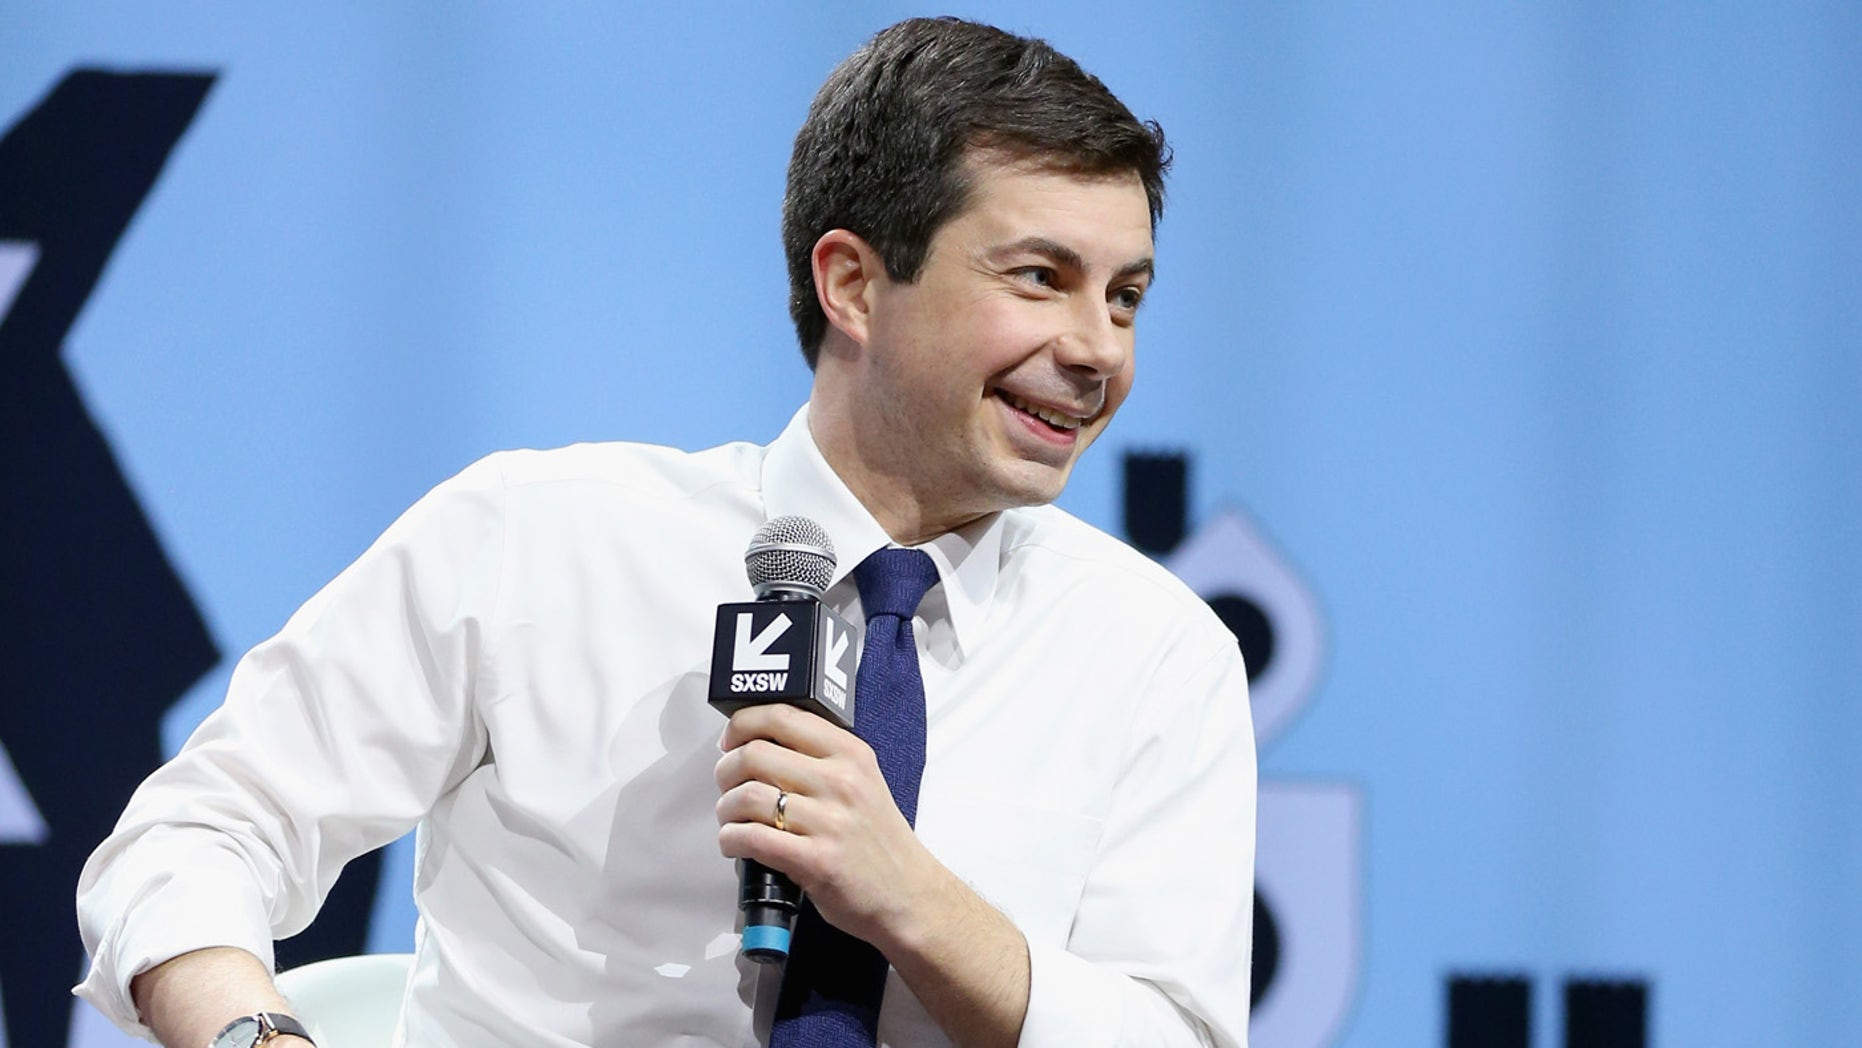 Pete Buttigieg speaks onstage at Conversations About America's Future: Mayor Pete Buttigieg during the 2019 SXSW Conference and Festivals at Austin City Limits Live at the Moody Theater on March 8, 2019 in Austin, Texas.